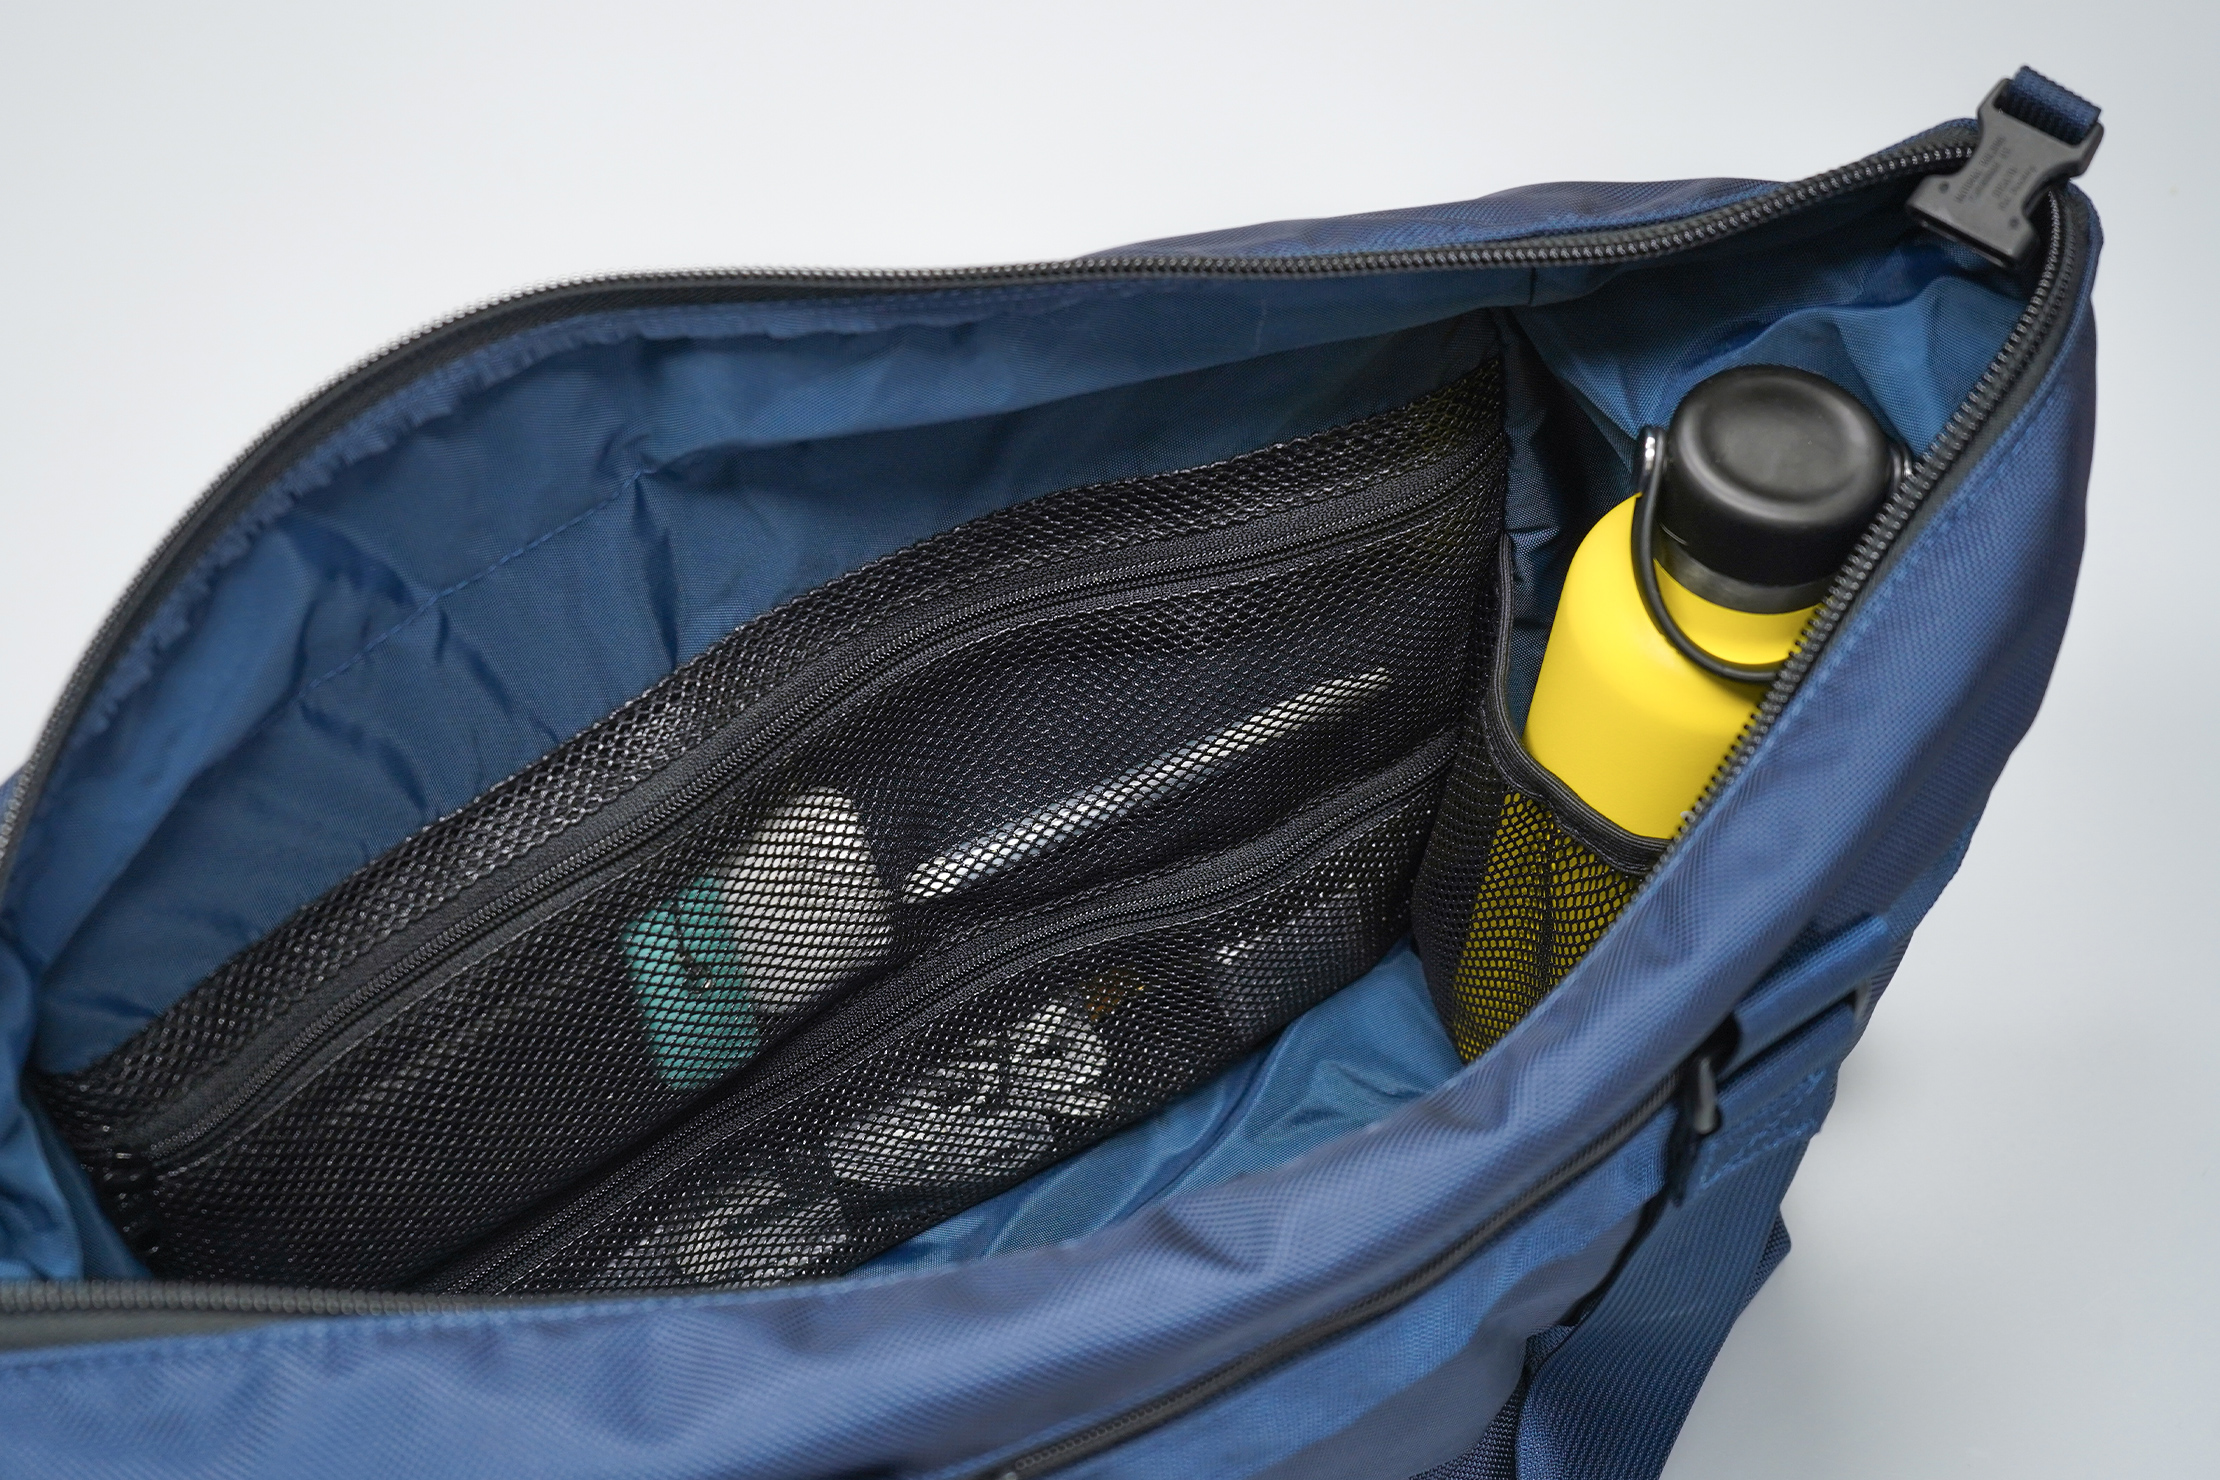 DSPTCH Utility Tote | Small items remain visible yet secure thanks to the mesh material